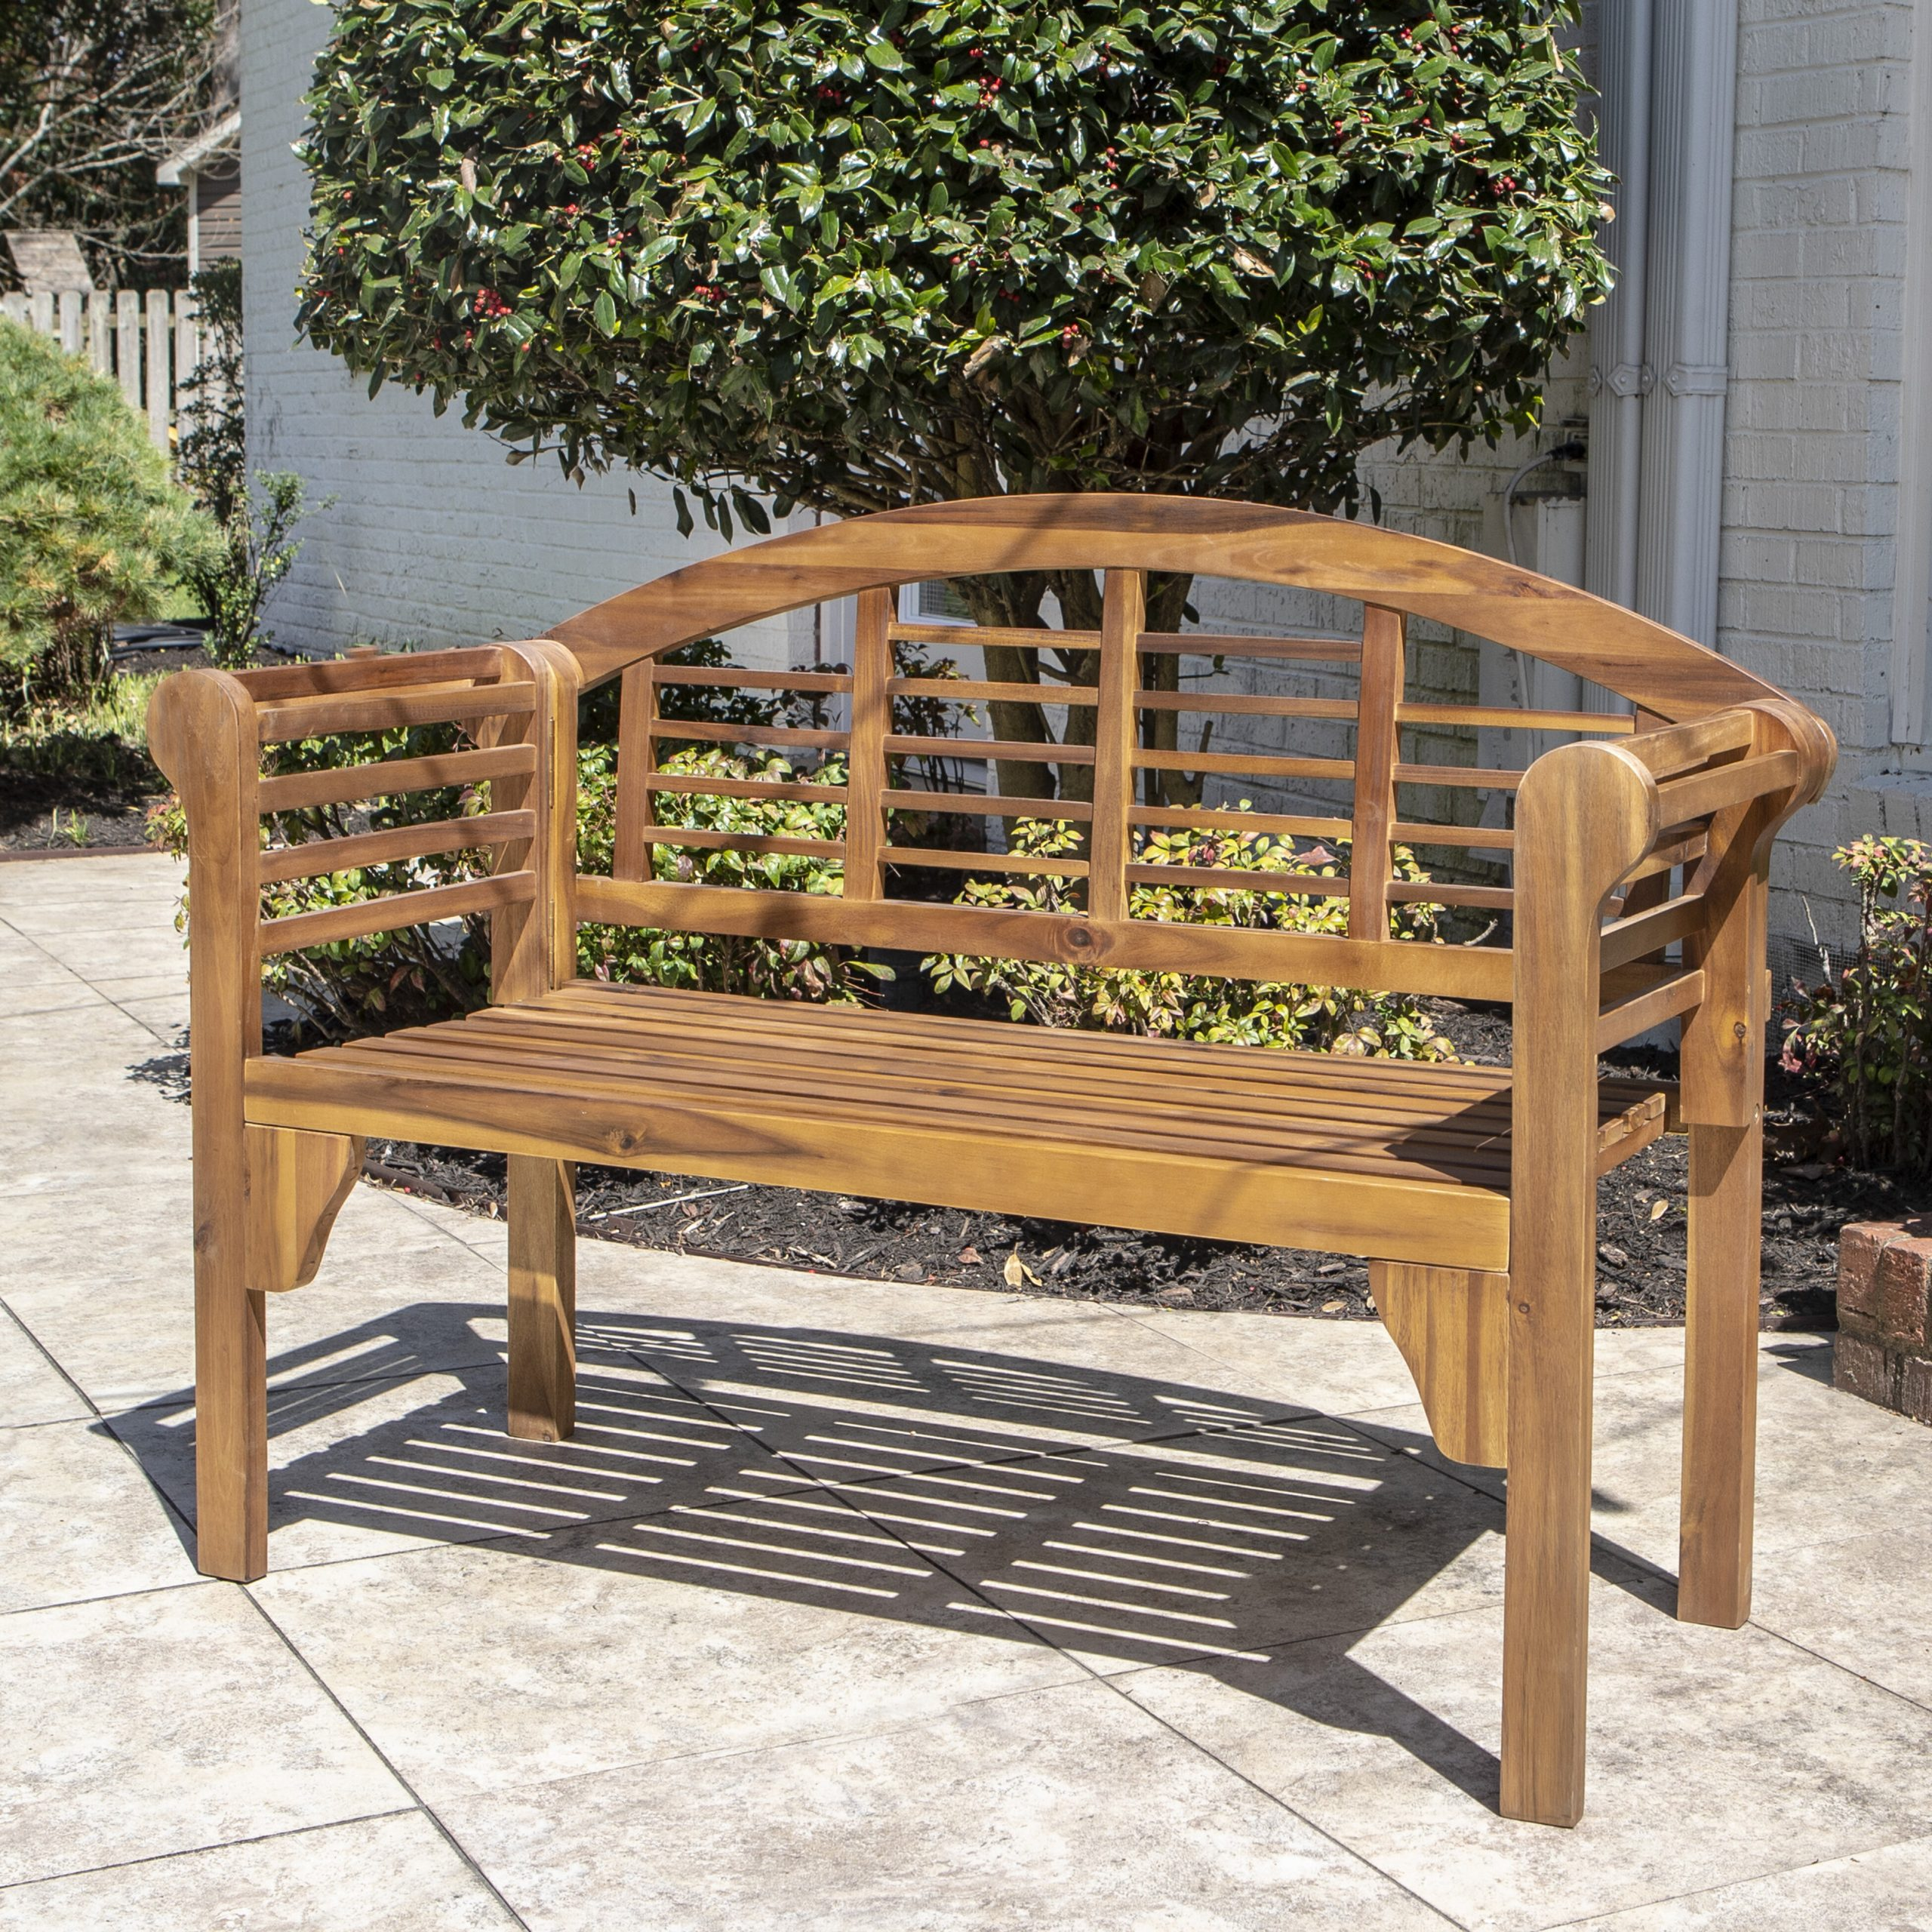 Mae Wood Garden Bench Intended For Manchester Wooden Garden Benches (View 16 of 25)